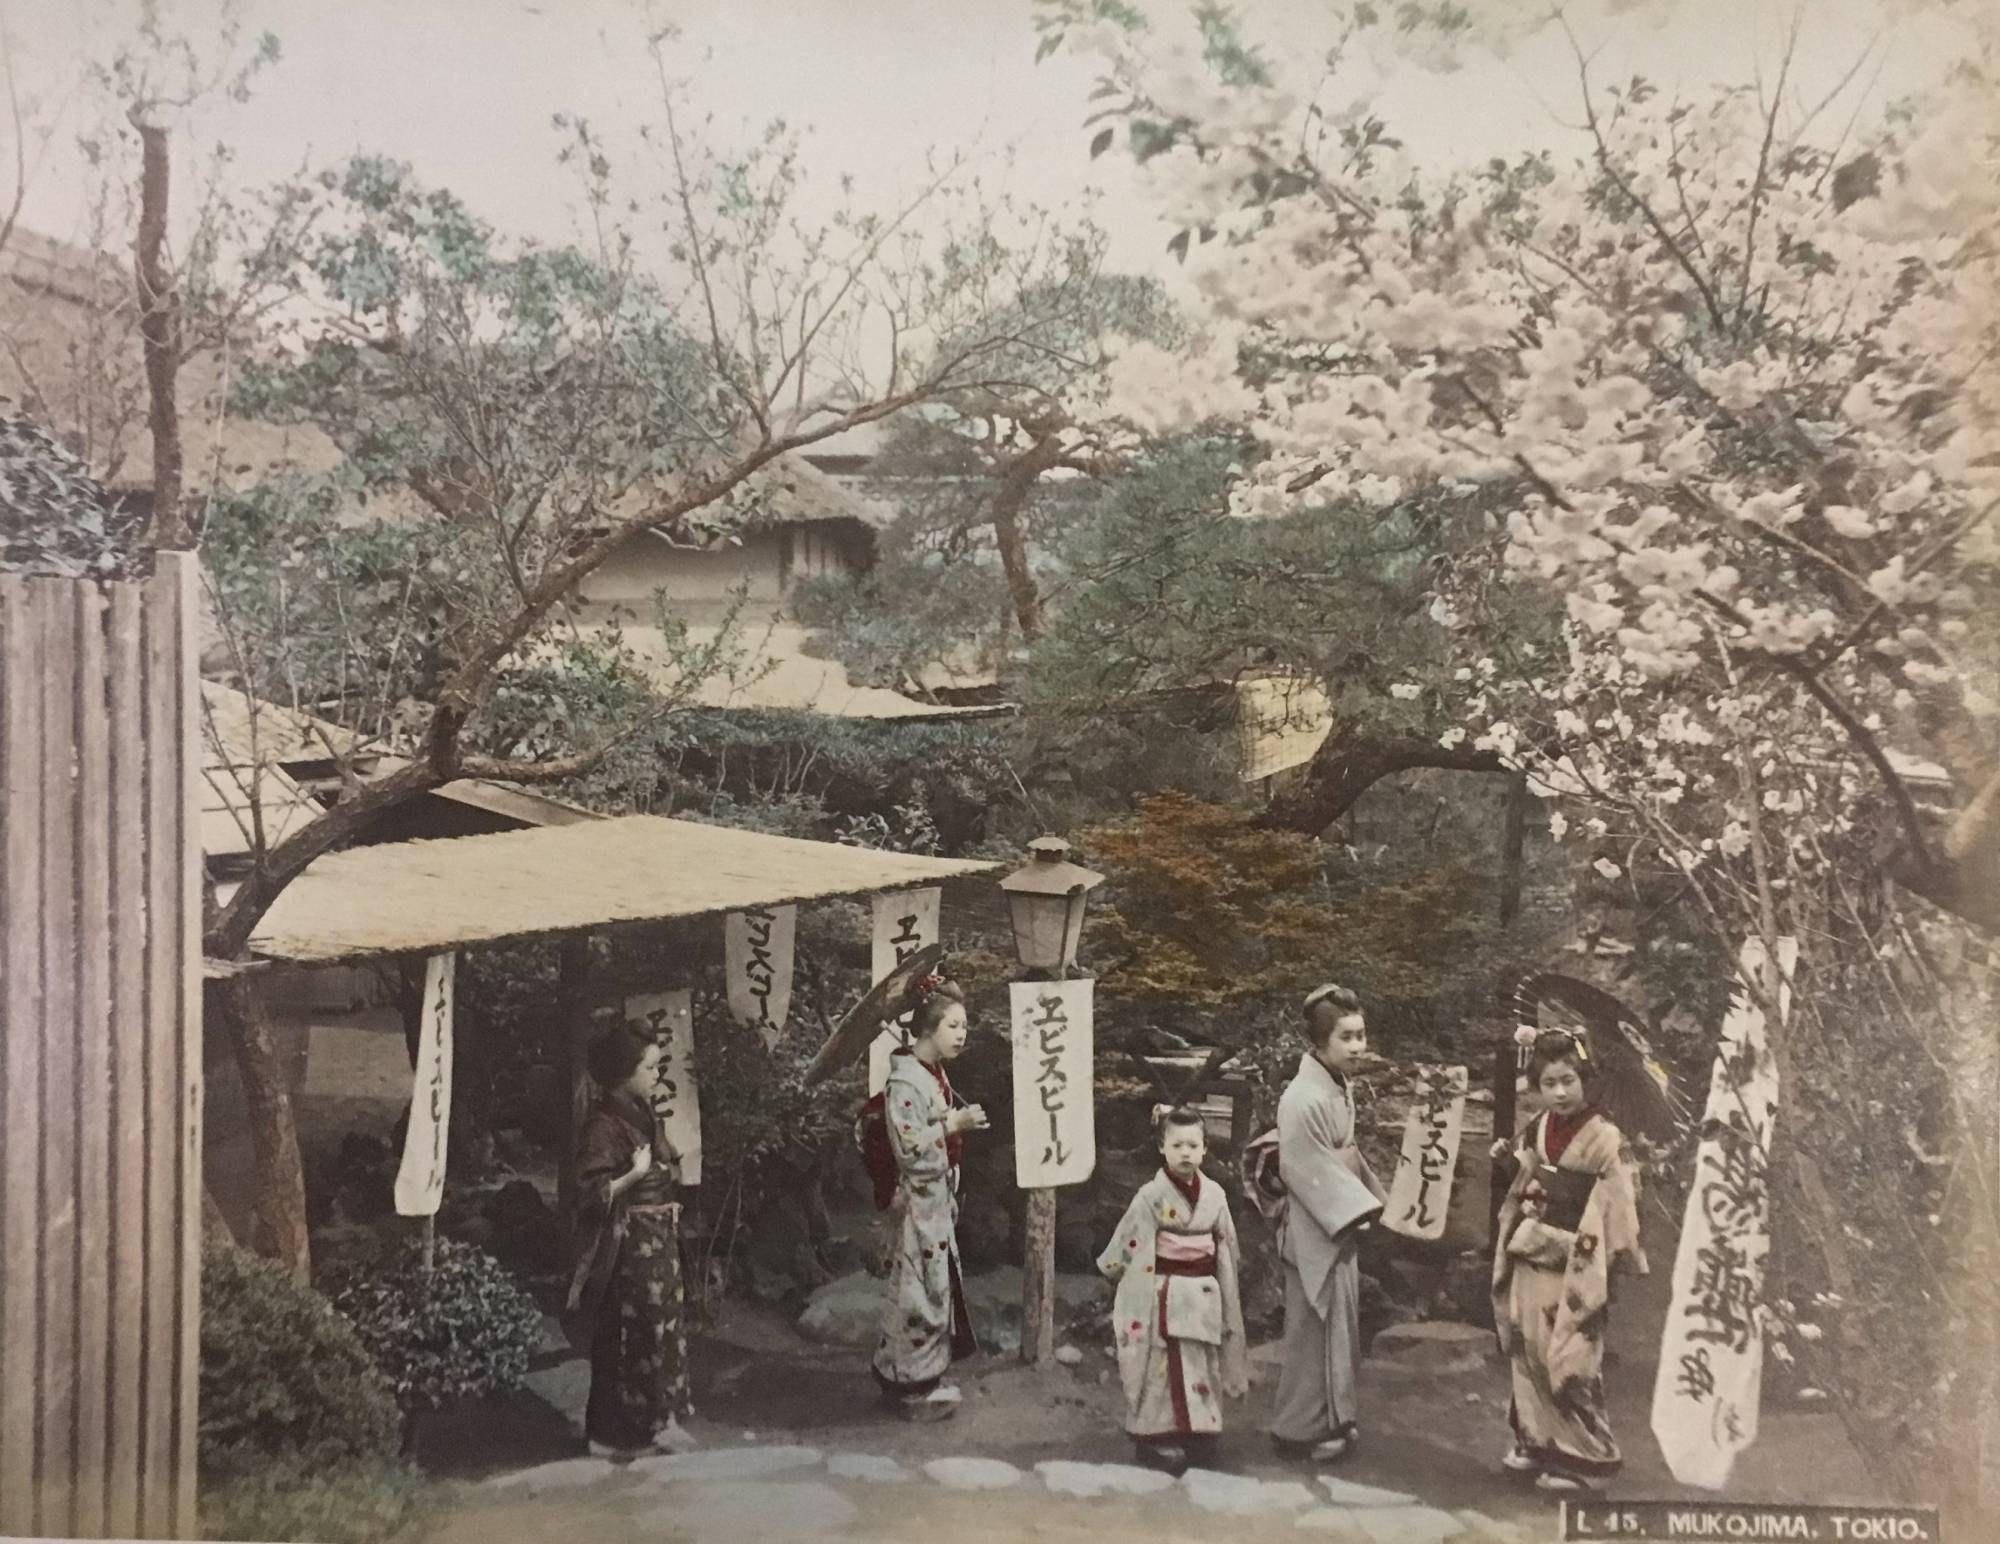 Afternoon stroll: A picture by an unknown photographer of Mukojima in Tokyo, a popular place for outings. Color photography did not yet exist when the photo was taken between 1882-97, so artists added color by hand.  | TOKYO PHOTOGRAPHIC ART MUSEUM